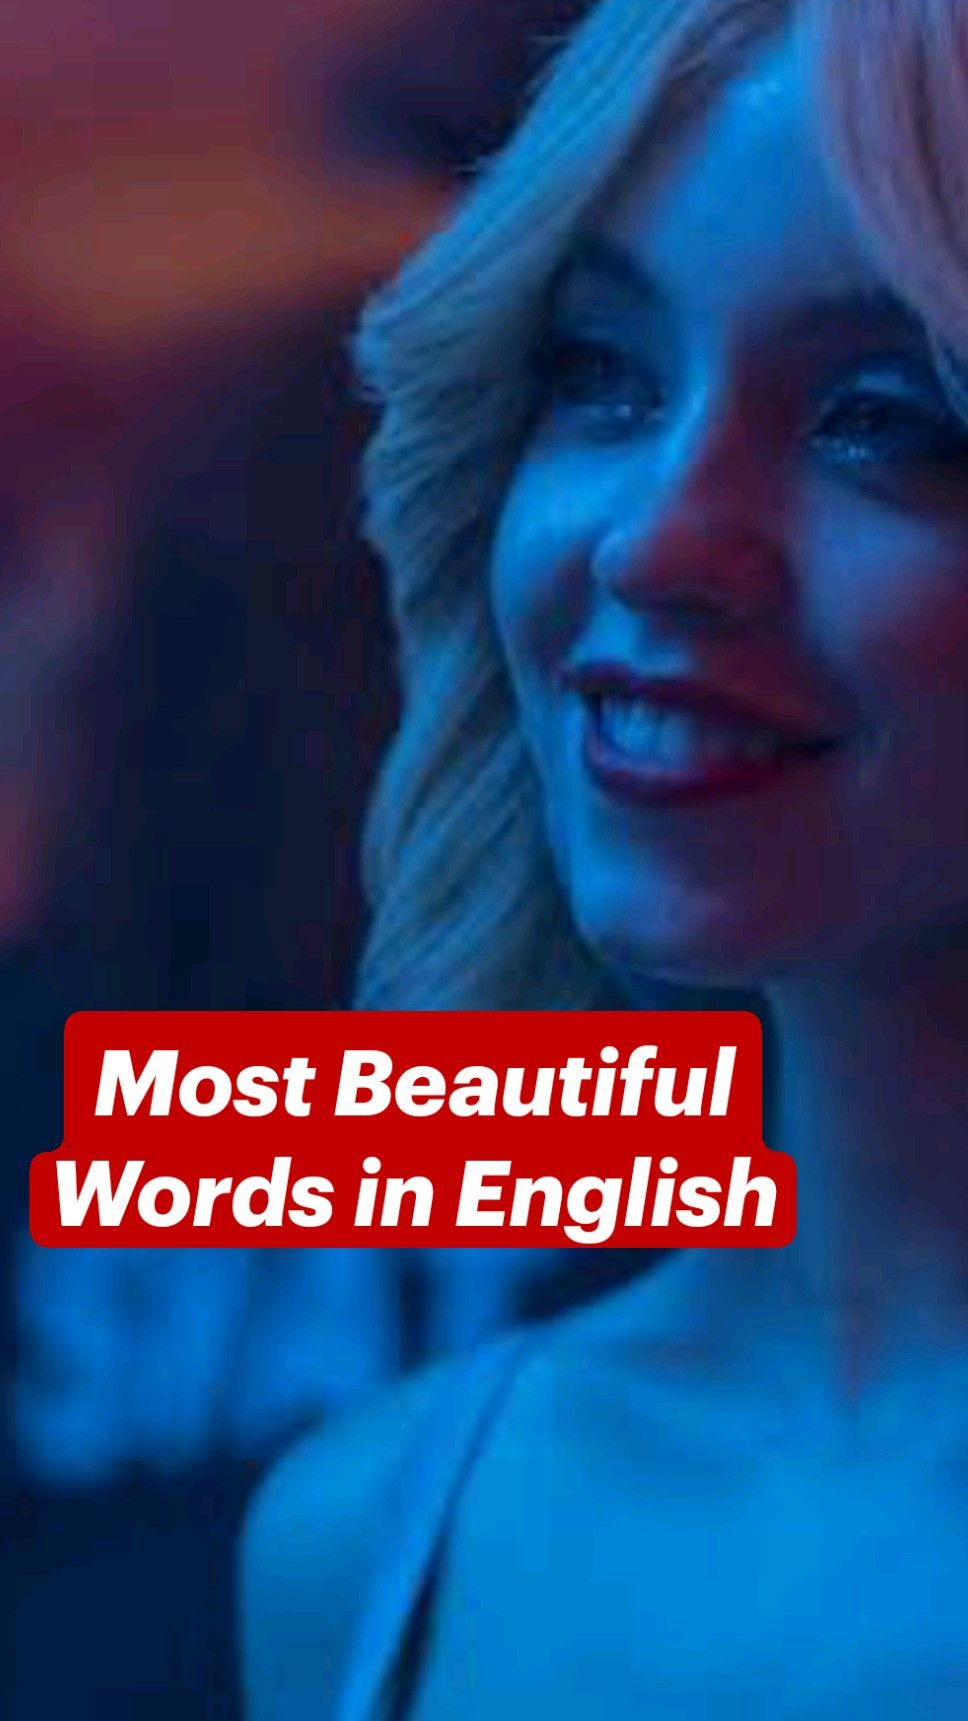 Most Beautiful Words in English